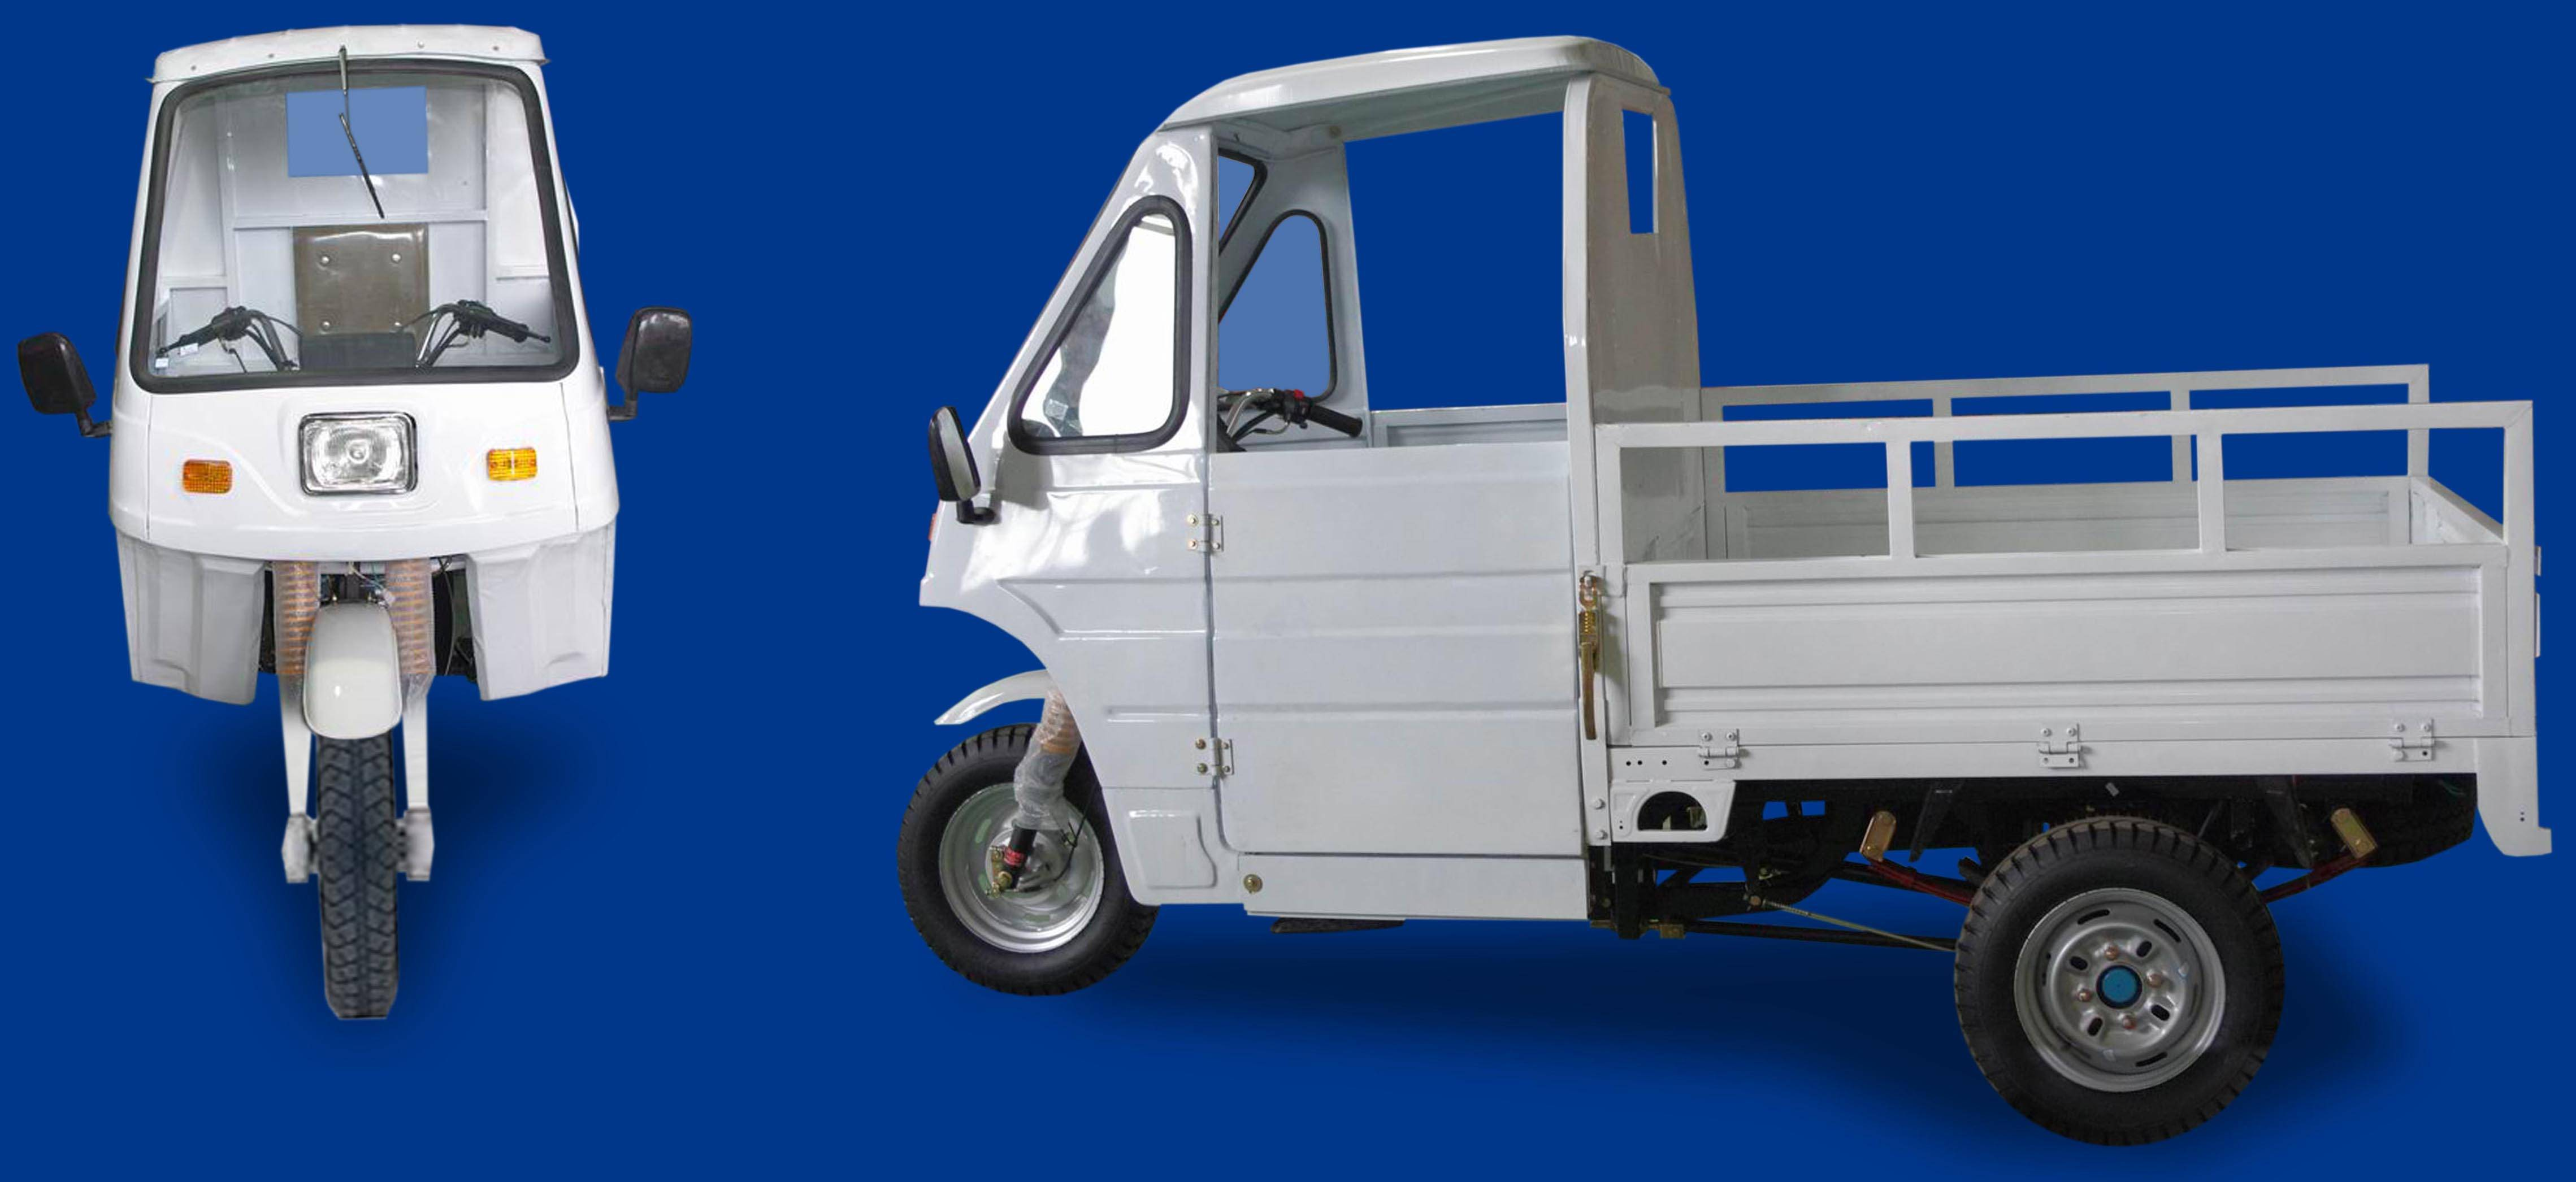 cargo tricycle with driver cabin and side doors